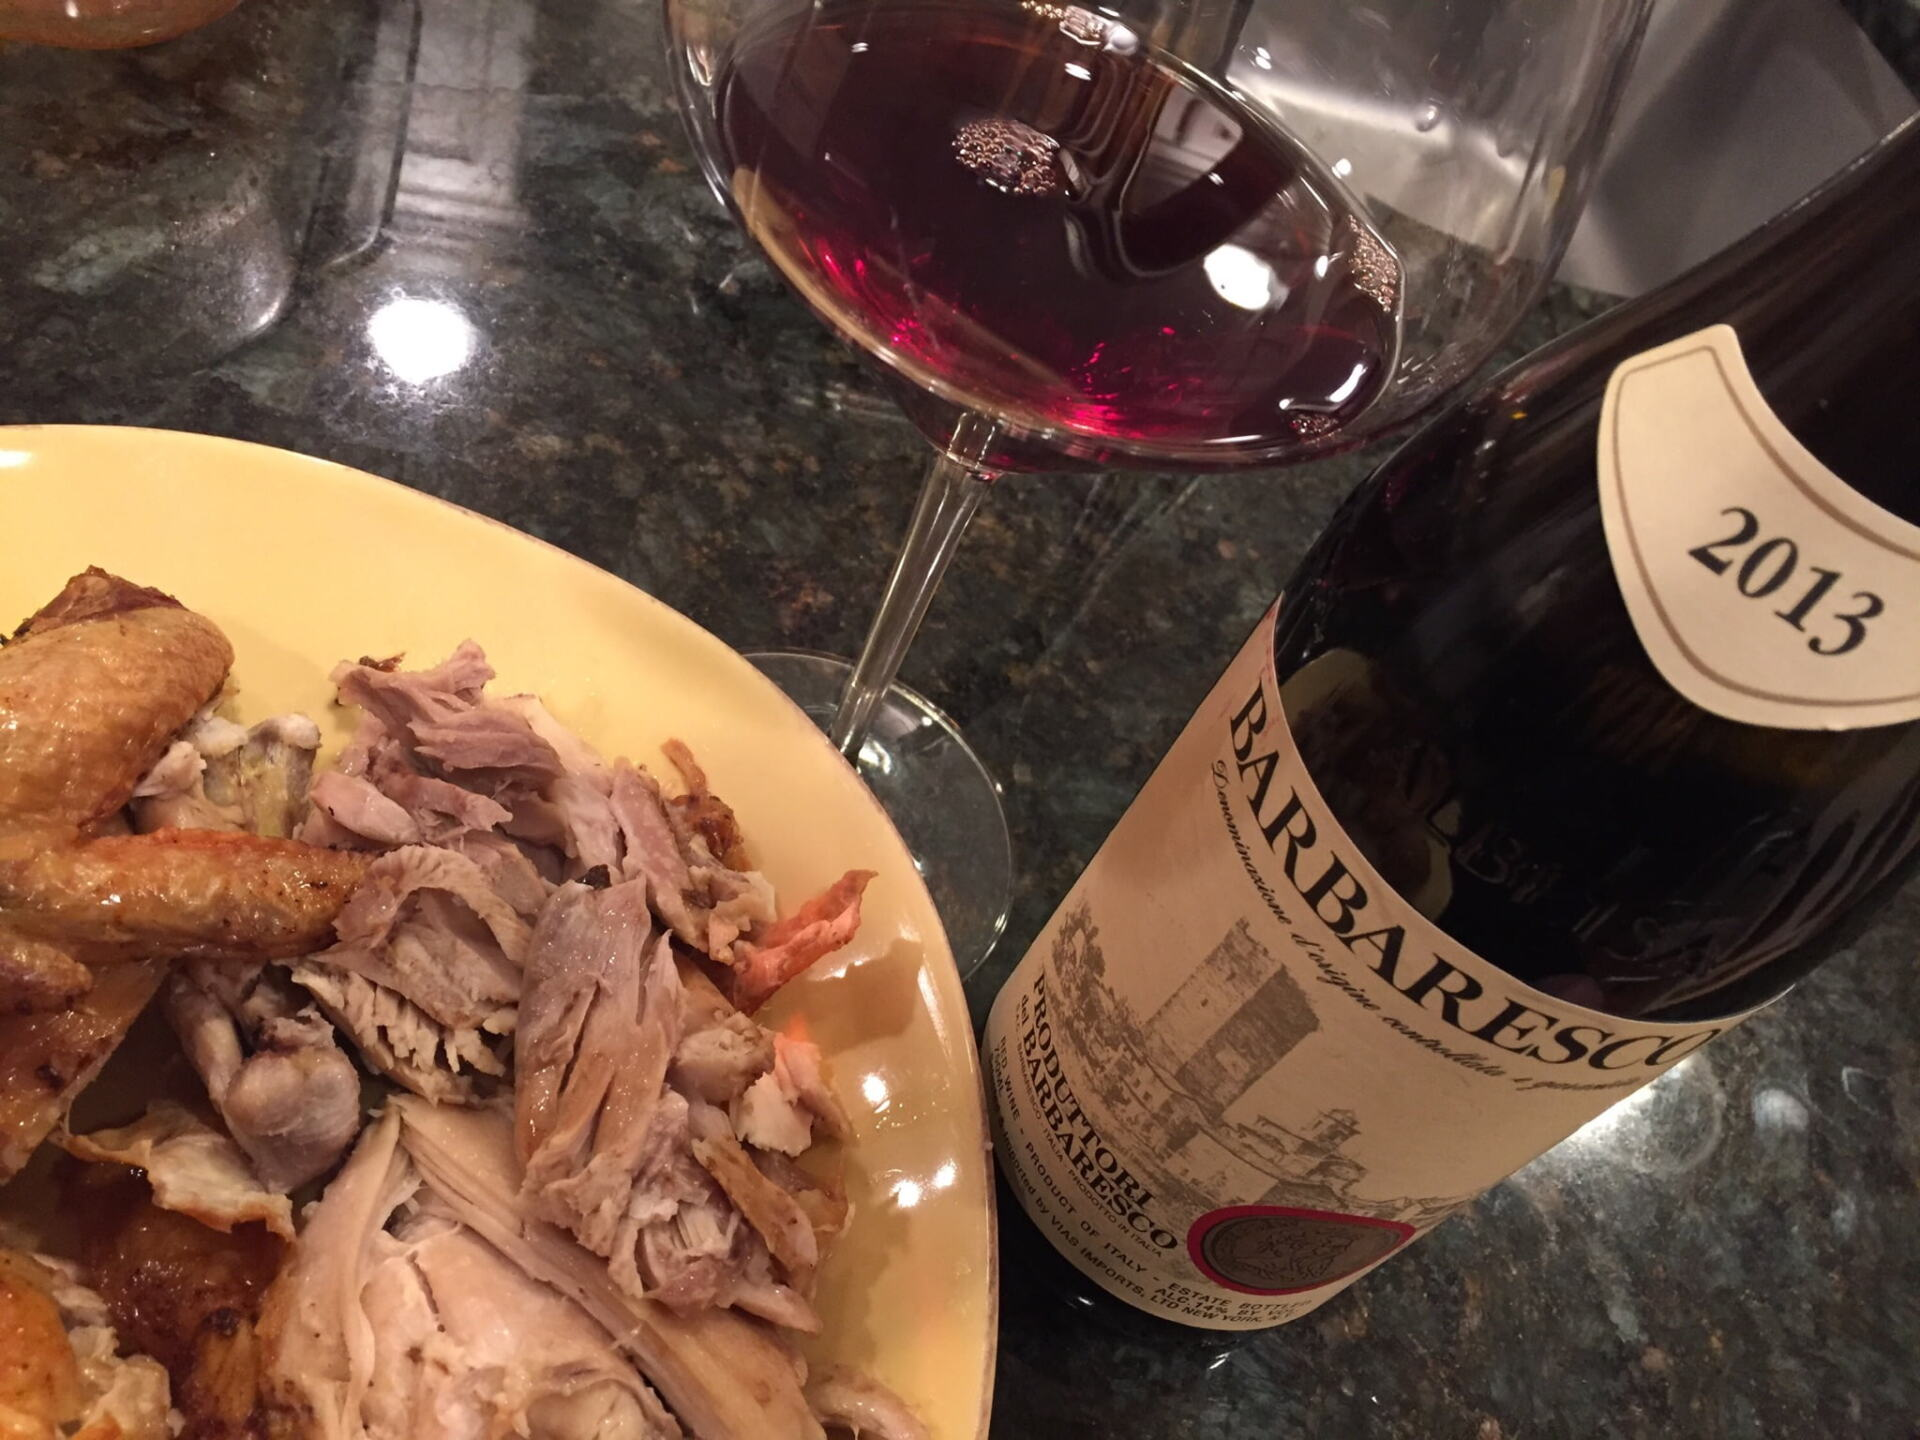 Roasted chicken, Barbaresco wine bottle and red wine in glass